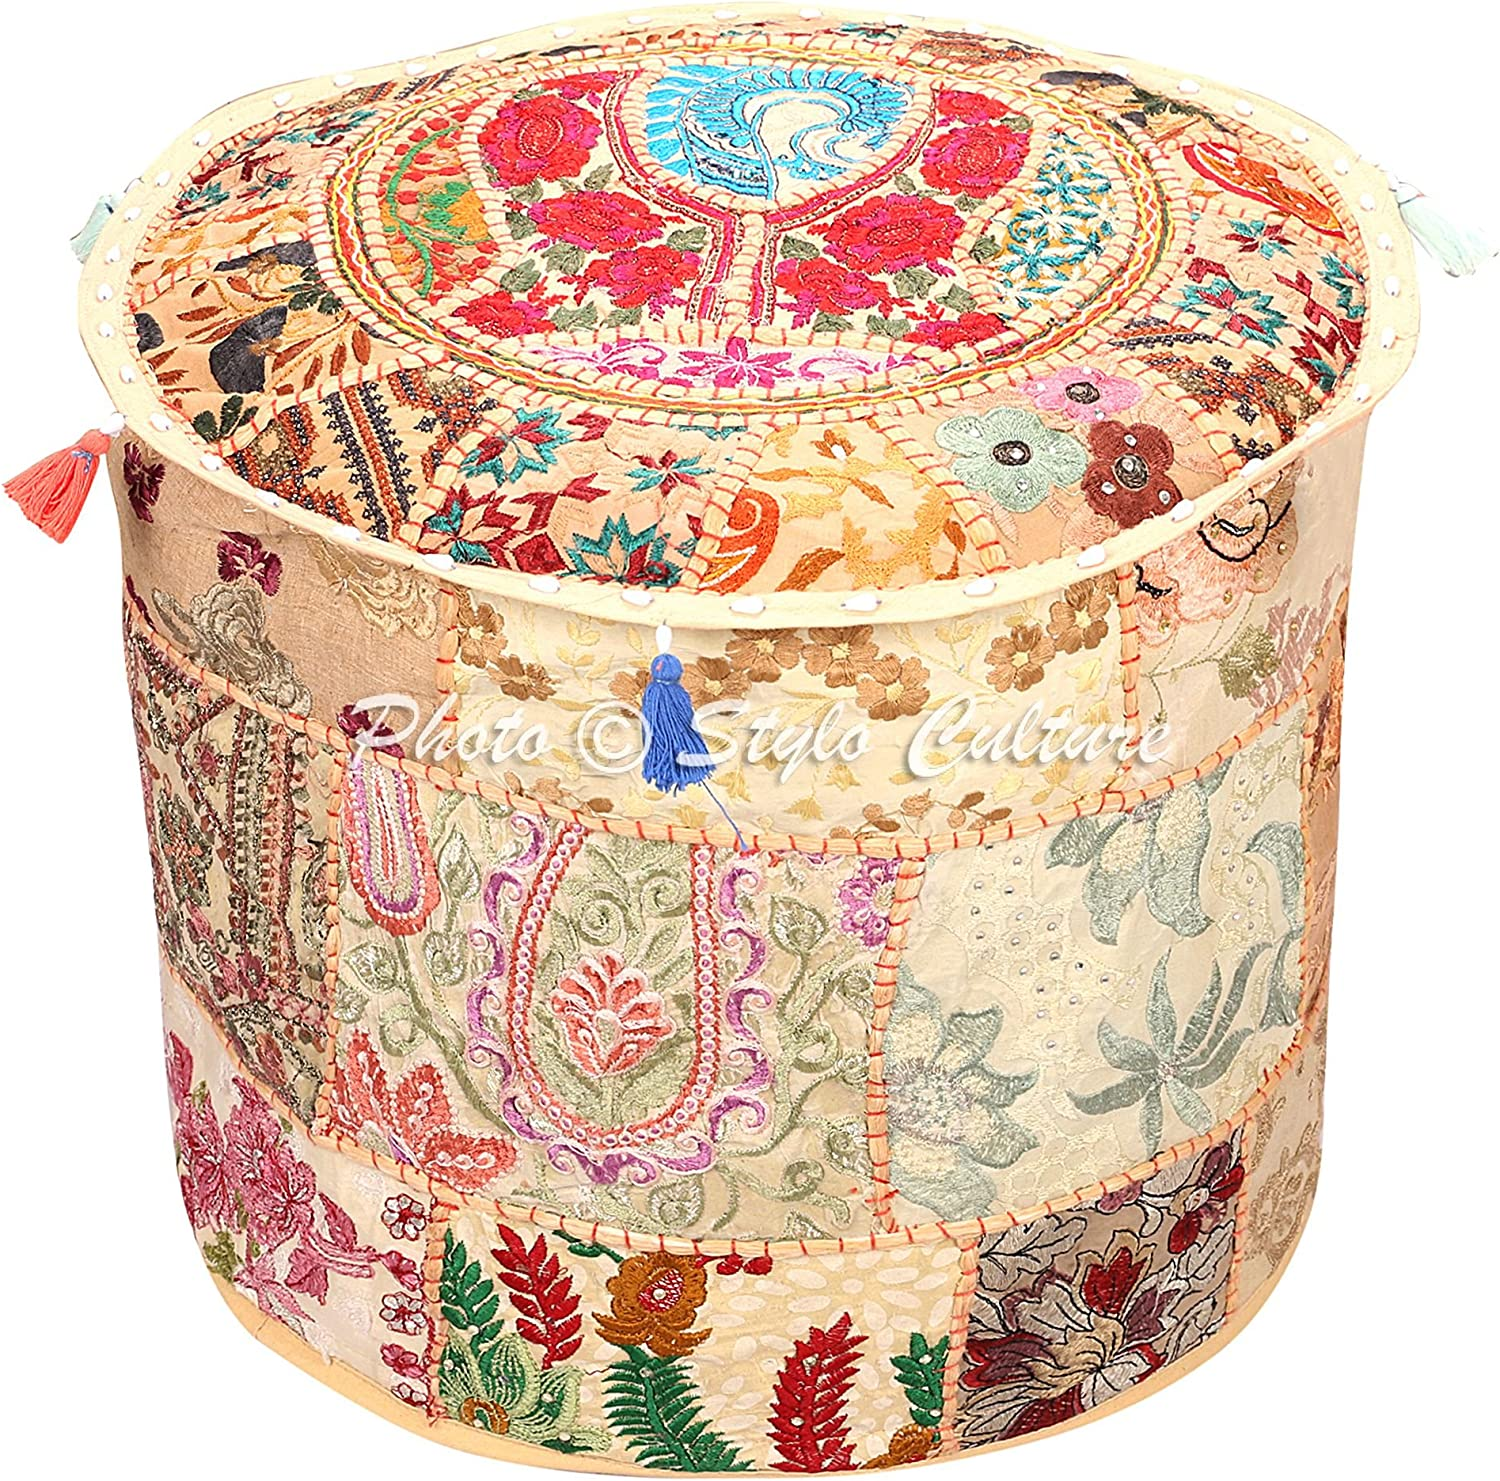 Stylo Culture Sale Limited time for free shipping item Indian Vintage Pouf Stool Ottoman Round Foot Cover